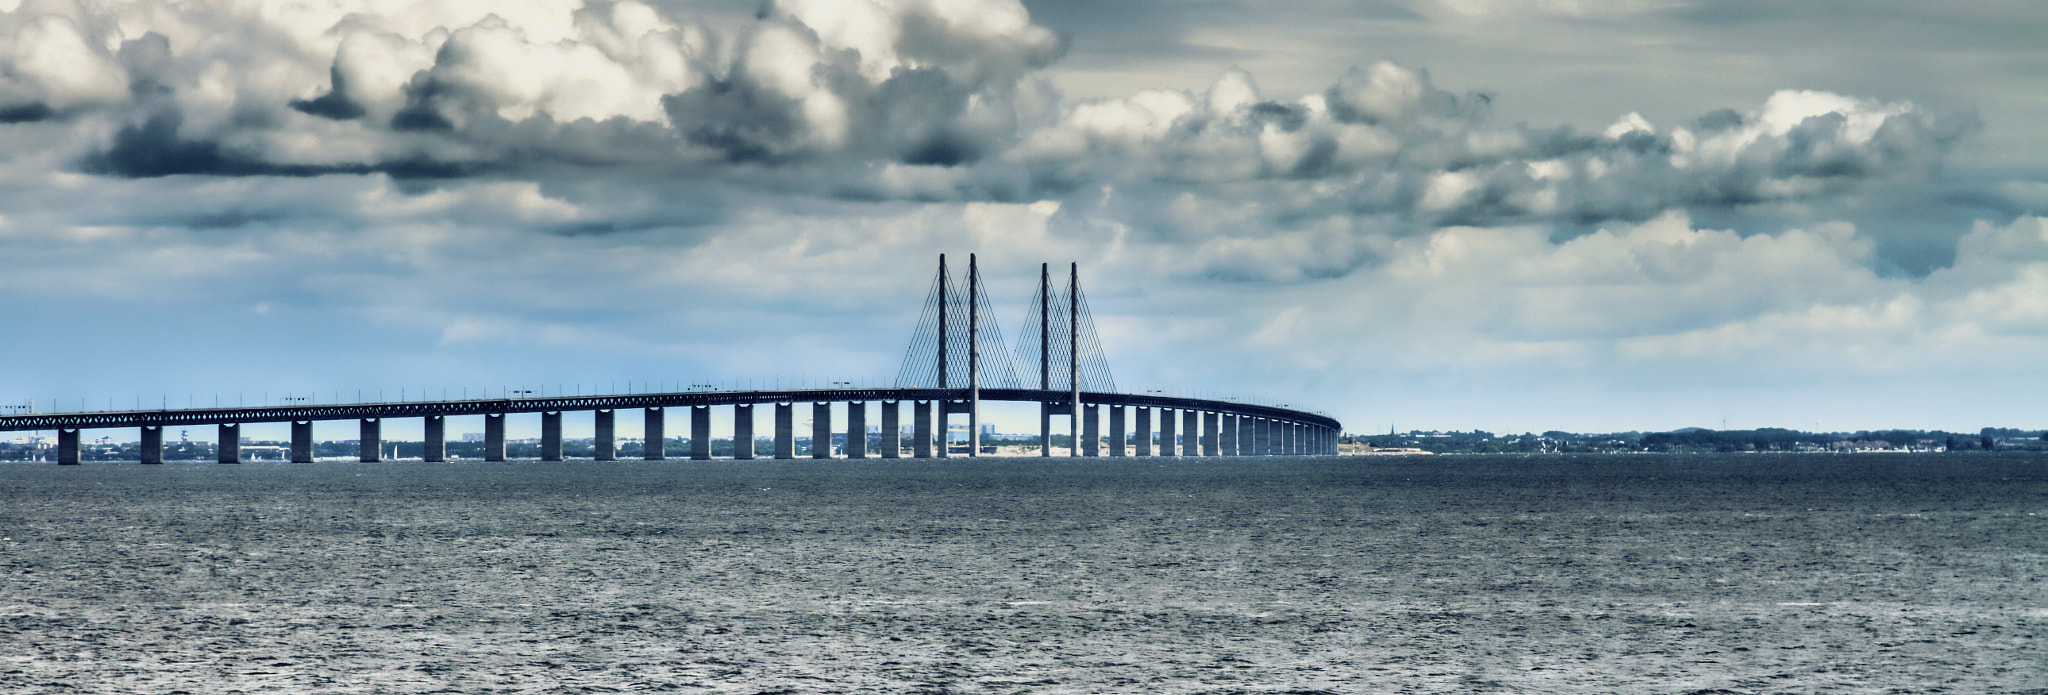 Photograph The Bridge Oresund by Rabih Mohamad on 500px